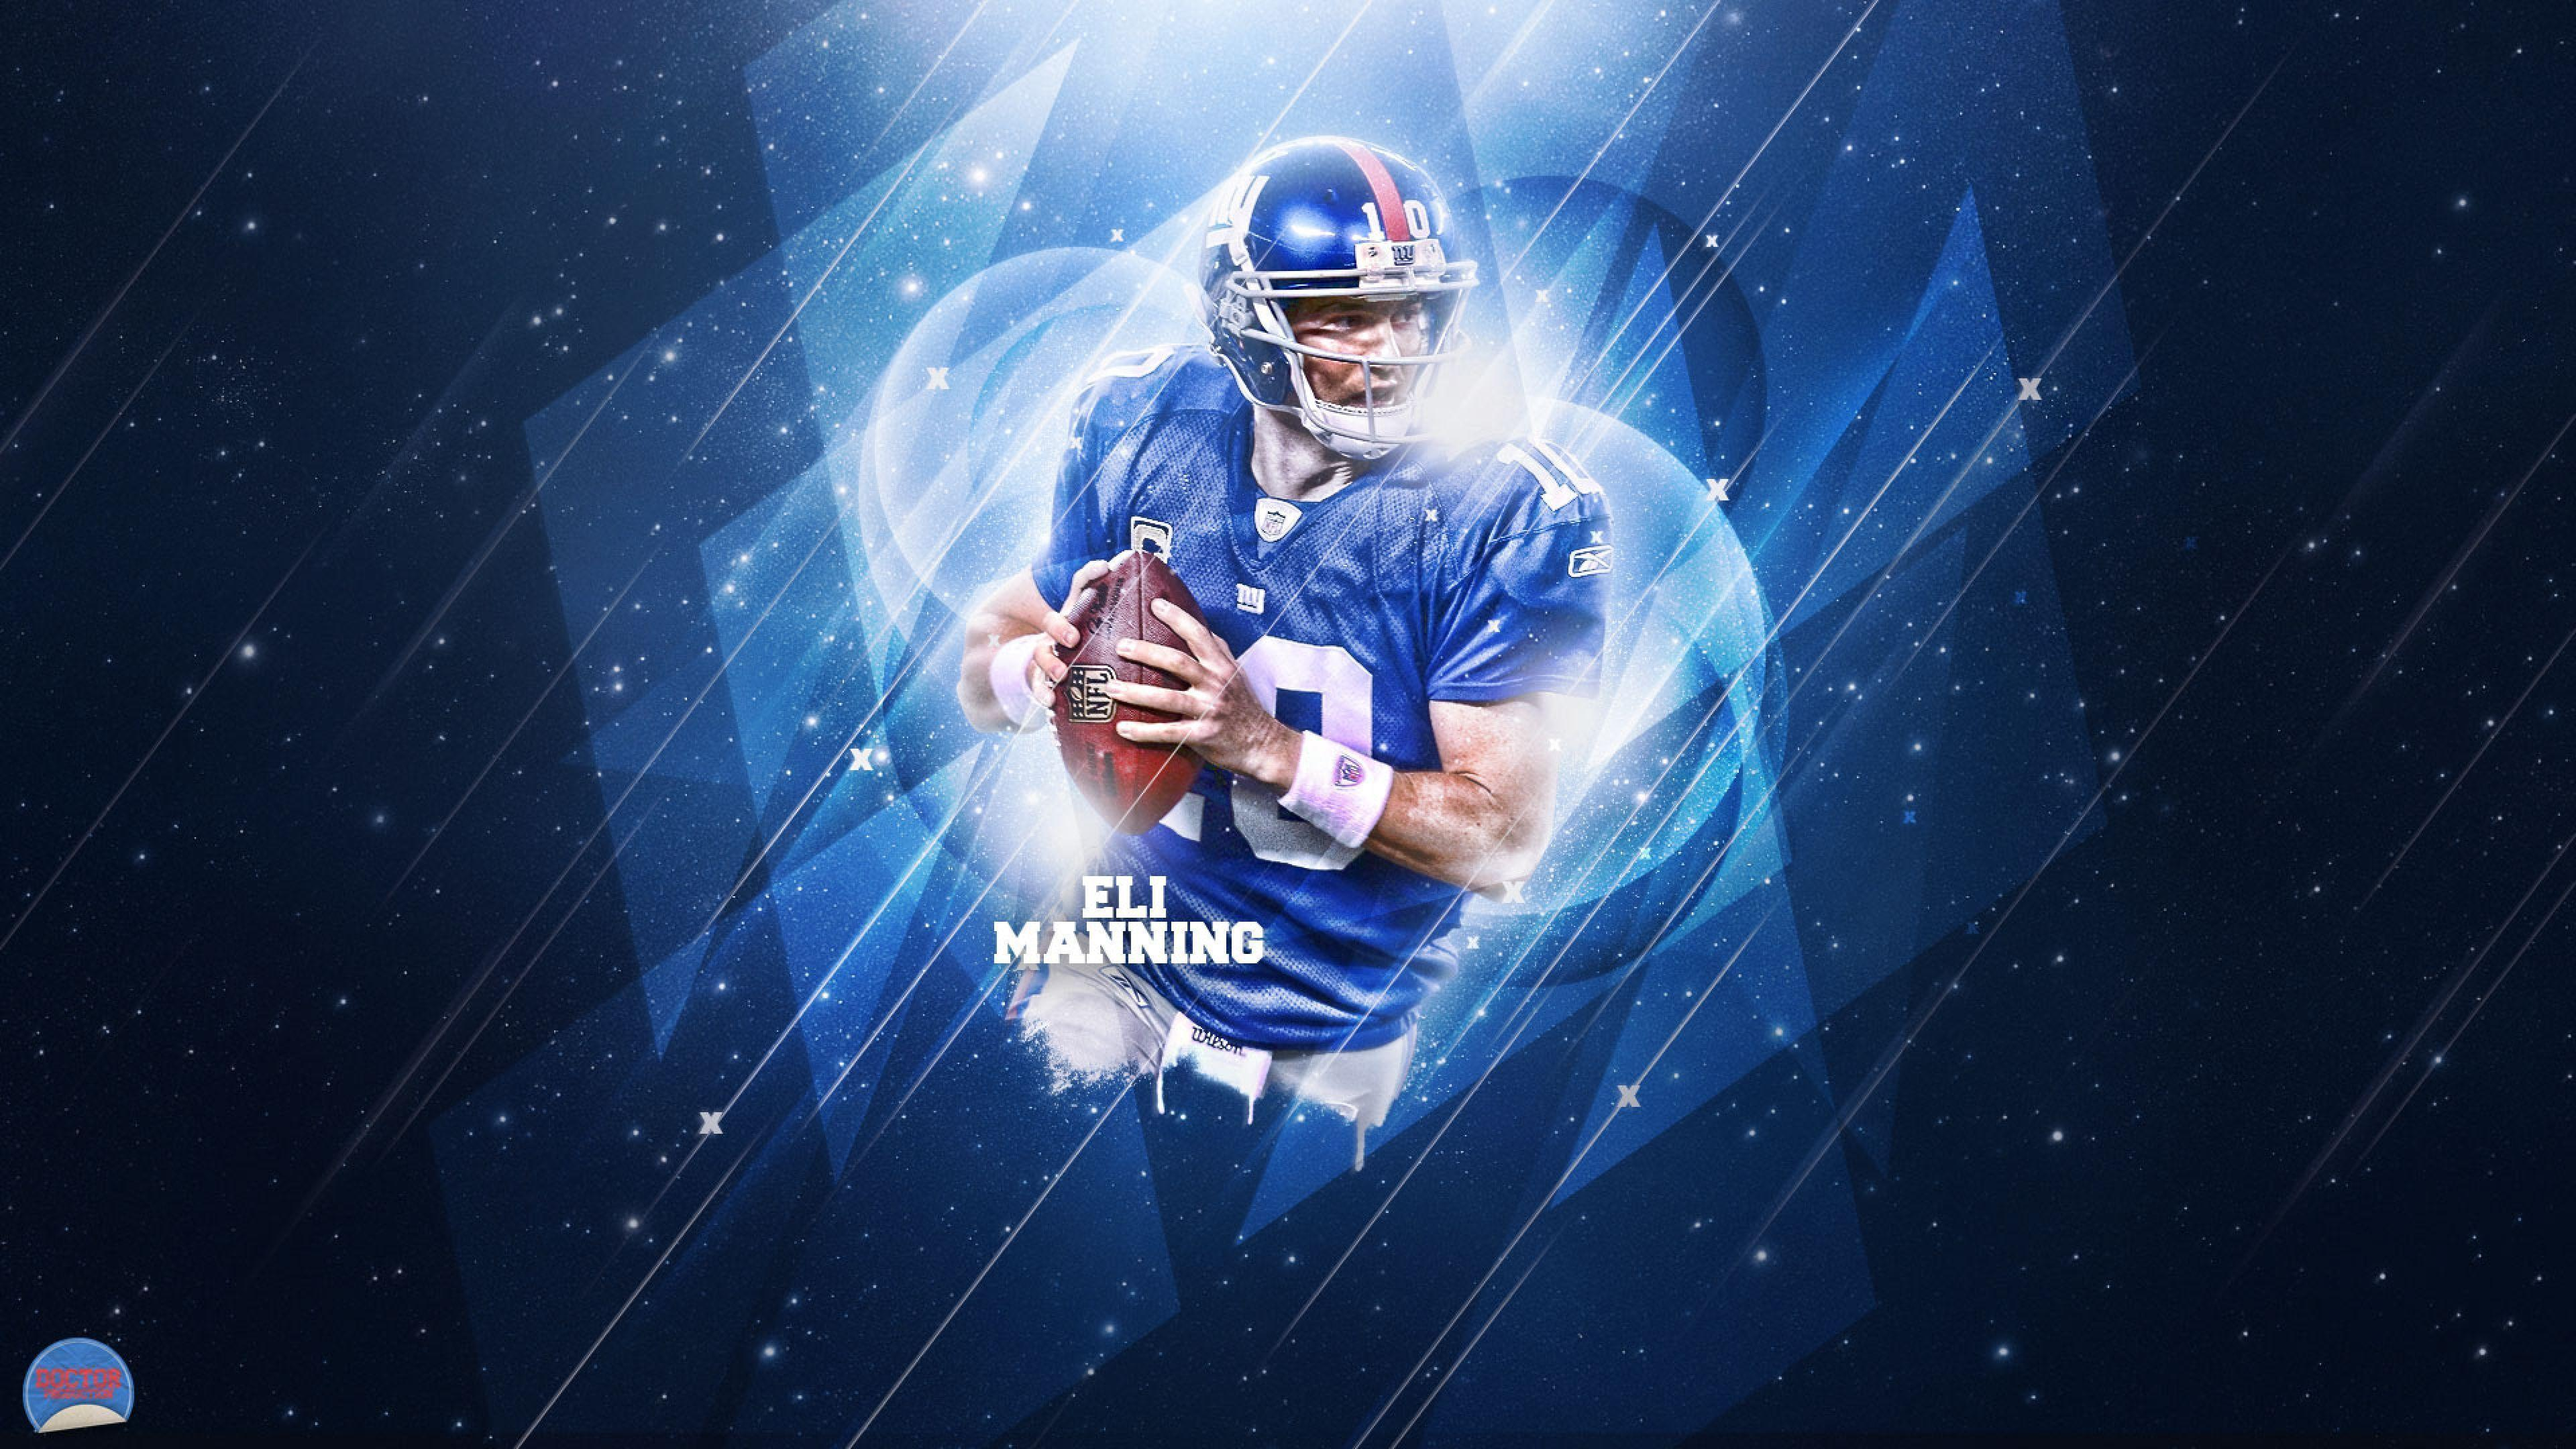 f2143475b Eli Manning Wallpapers HD - Page 2 of 3 - wallpaper.wiki